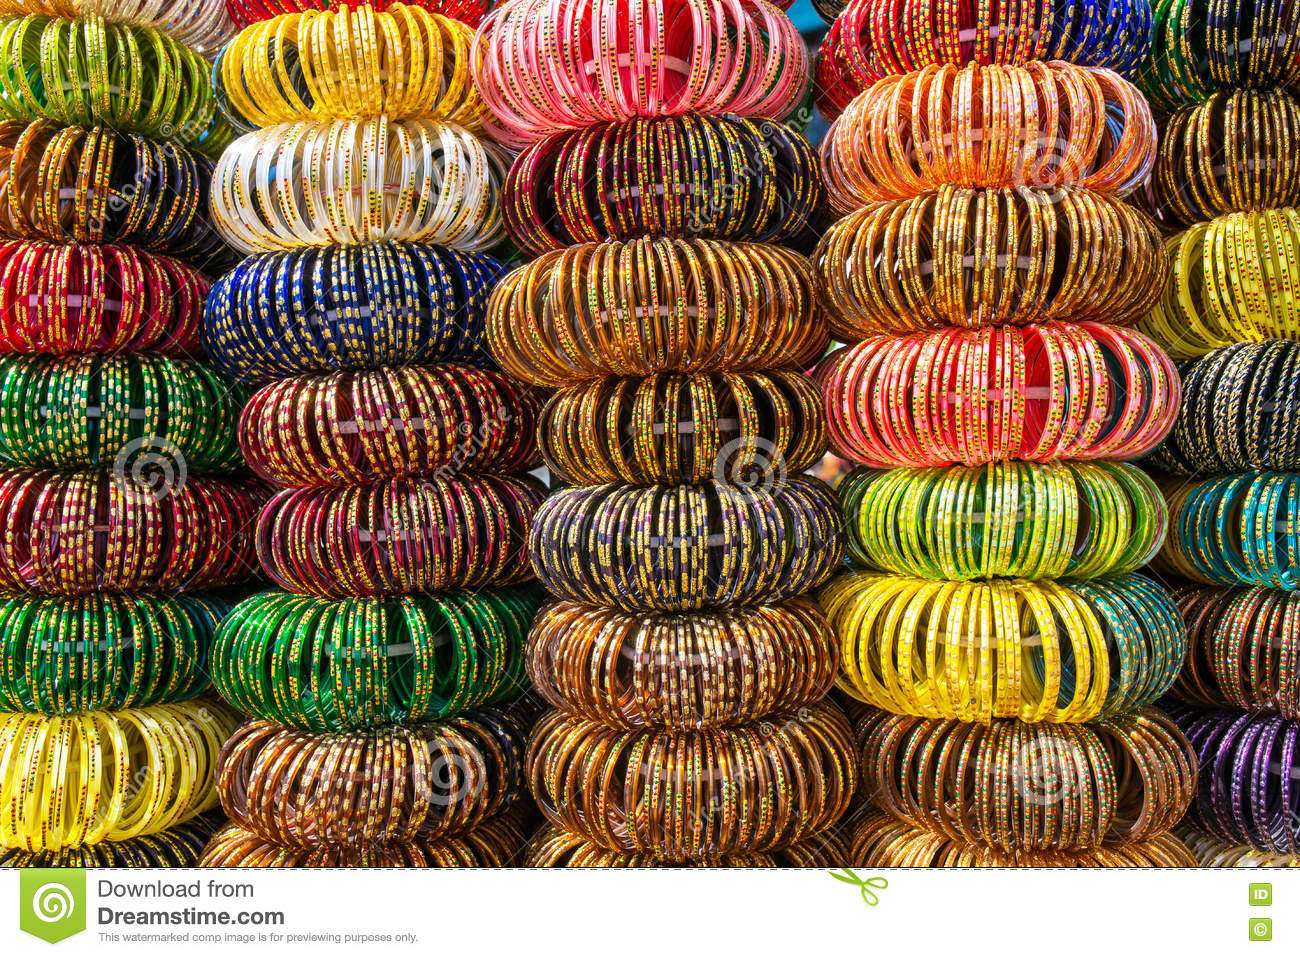 Colourful Indian wrist bracelets stacked in piles